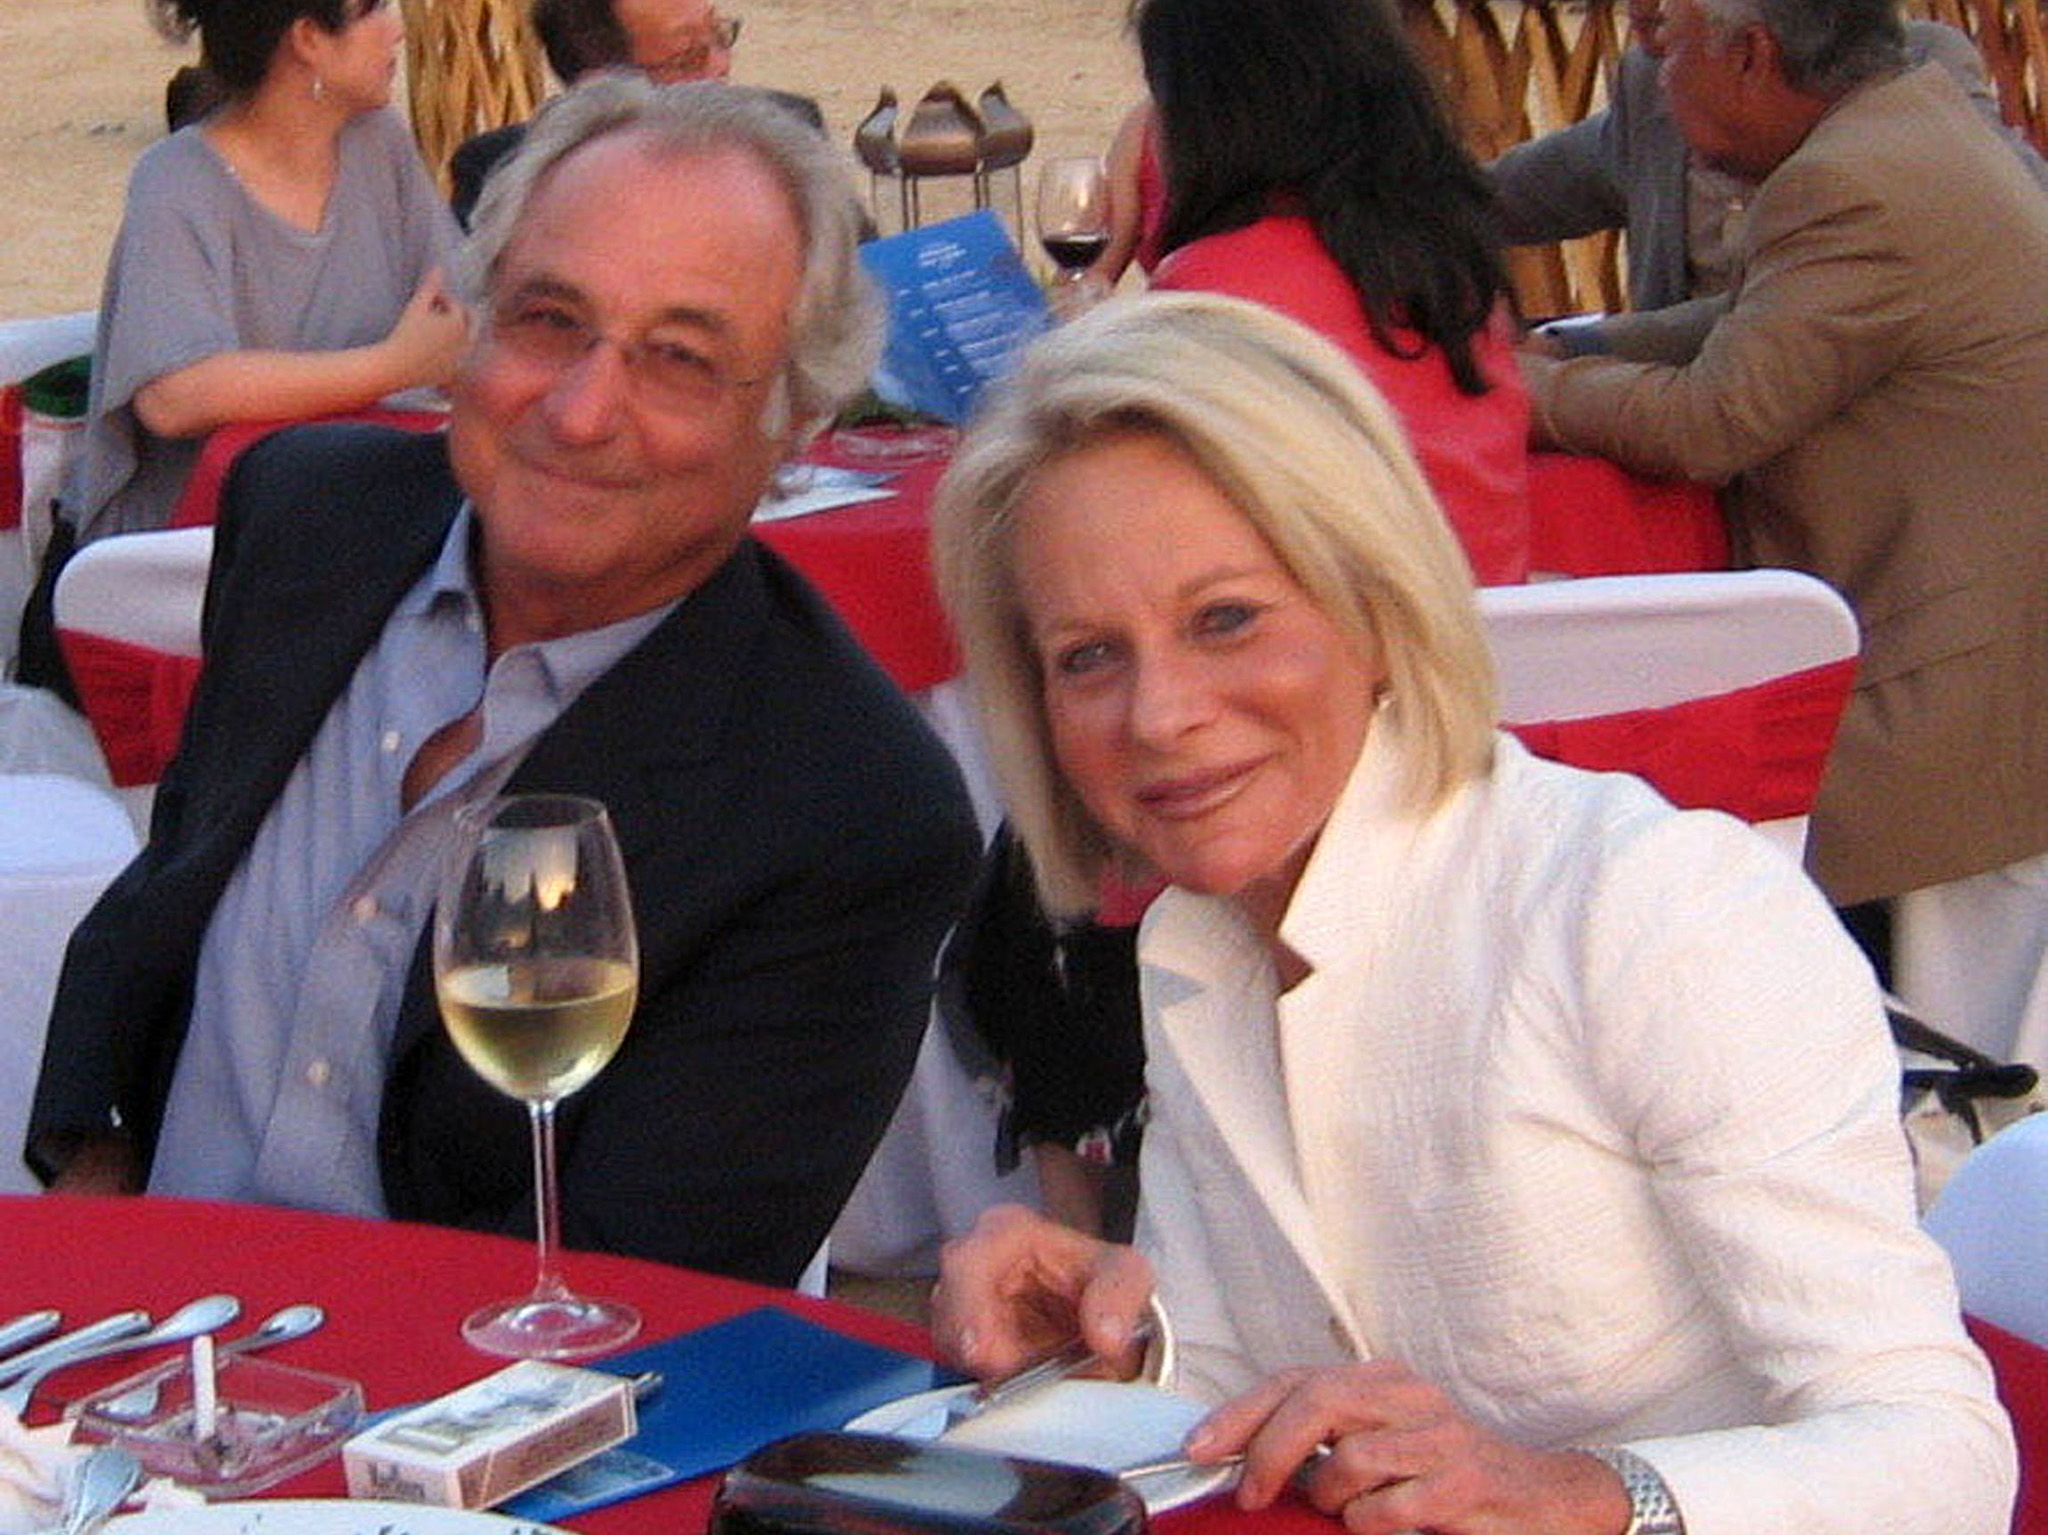 Bernard Madoff and wife Ruth at a party in the desert near Cabo san Lucas. This image is from In... [Photo of the day - می 2019]